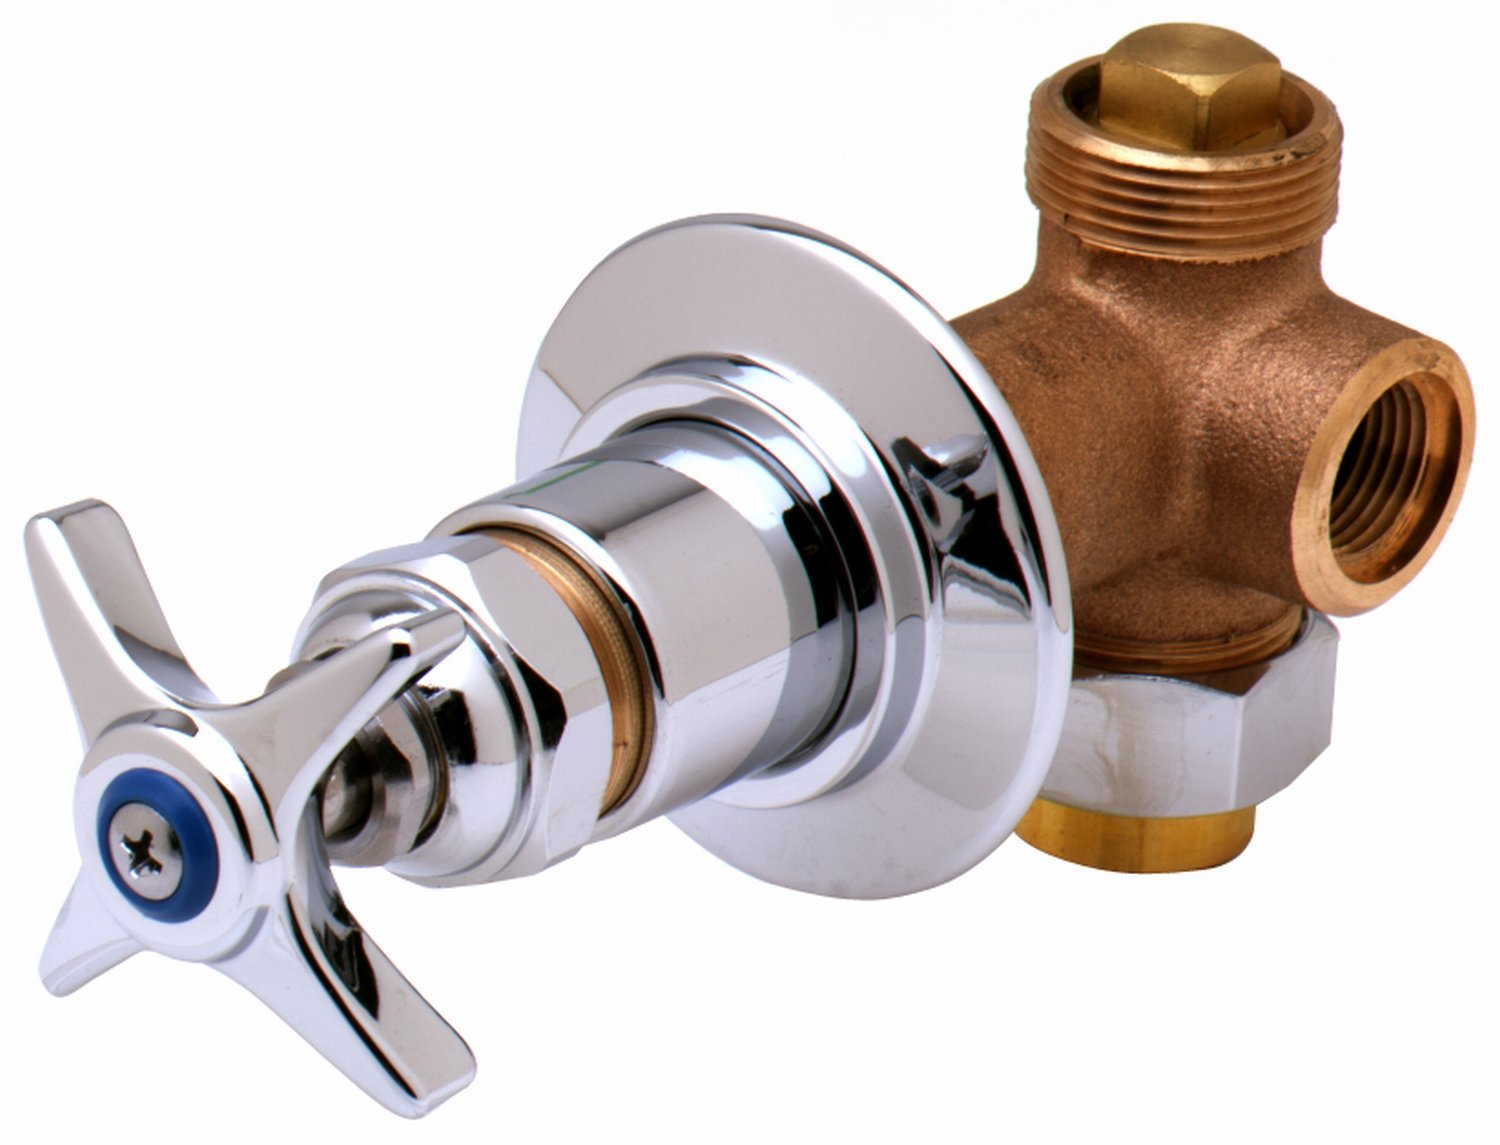 T&S Brass B-1020 Concealed Bypass Valve, 1/2-Inch Npt Female Inlet and Outlet, 4-Arm Handle, Cold Index